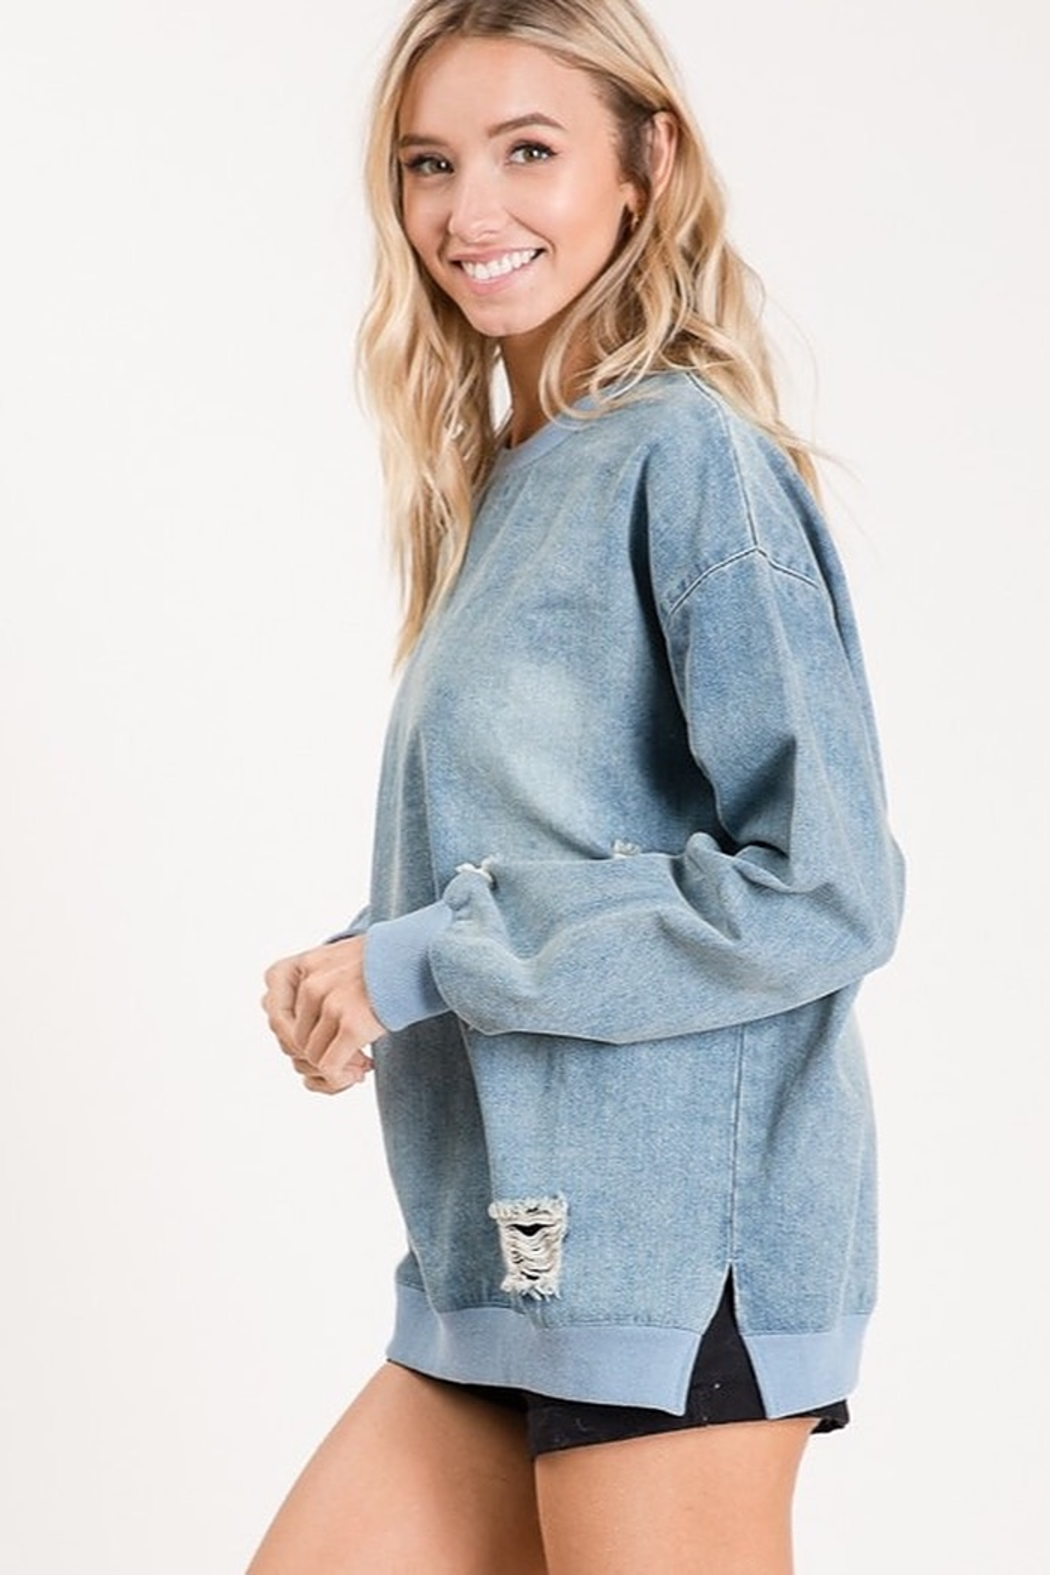 Macaron VINTAGE LOOKING DENIM PULL OVER TOP - Side Cropped Image